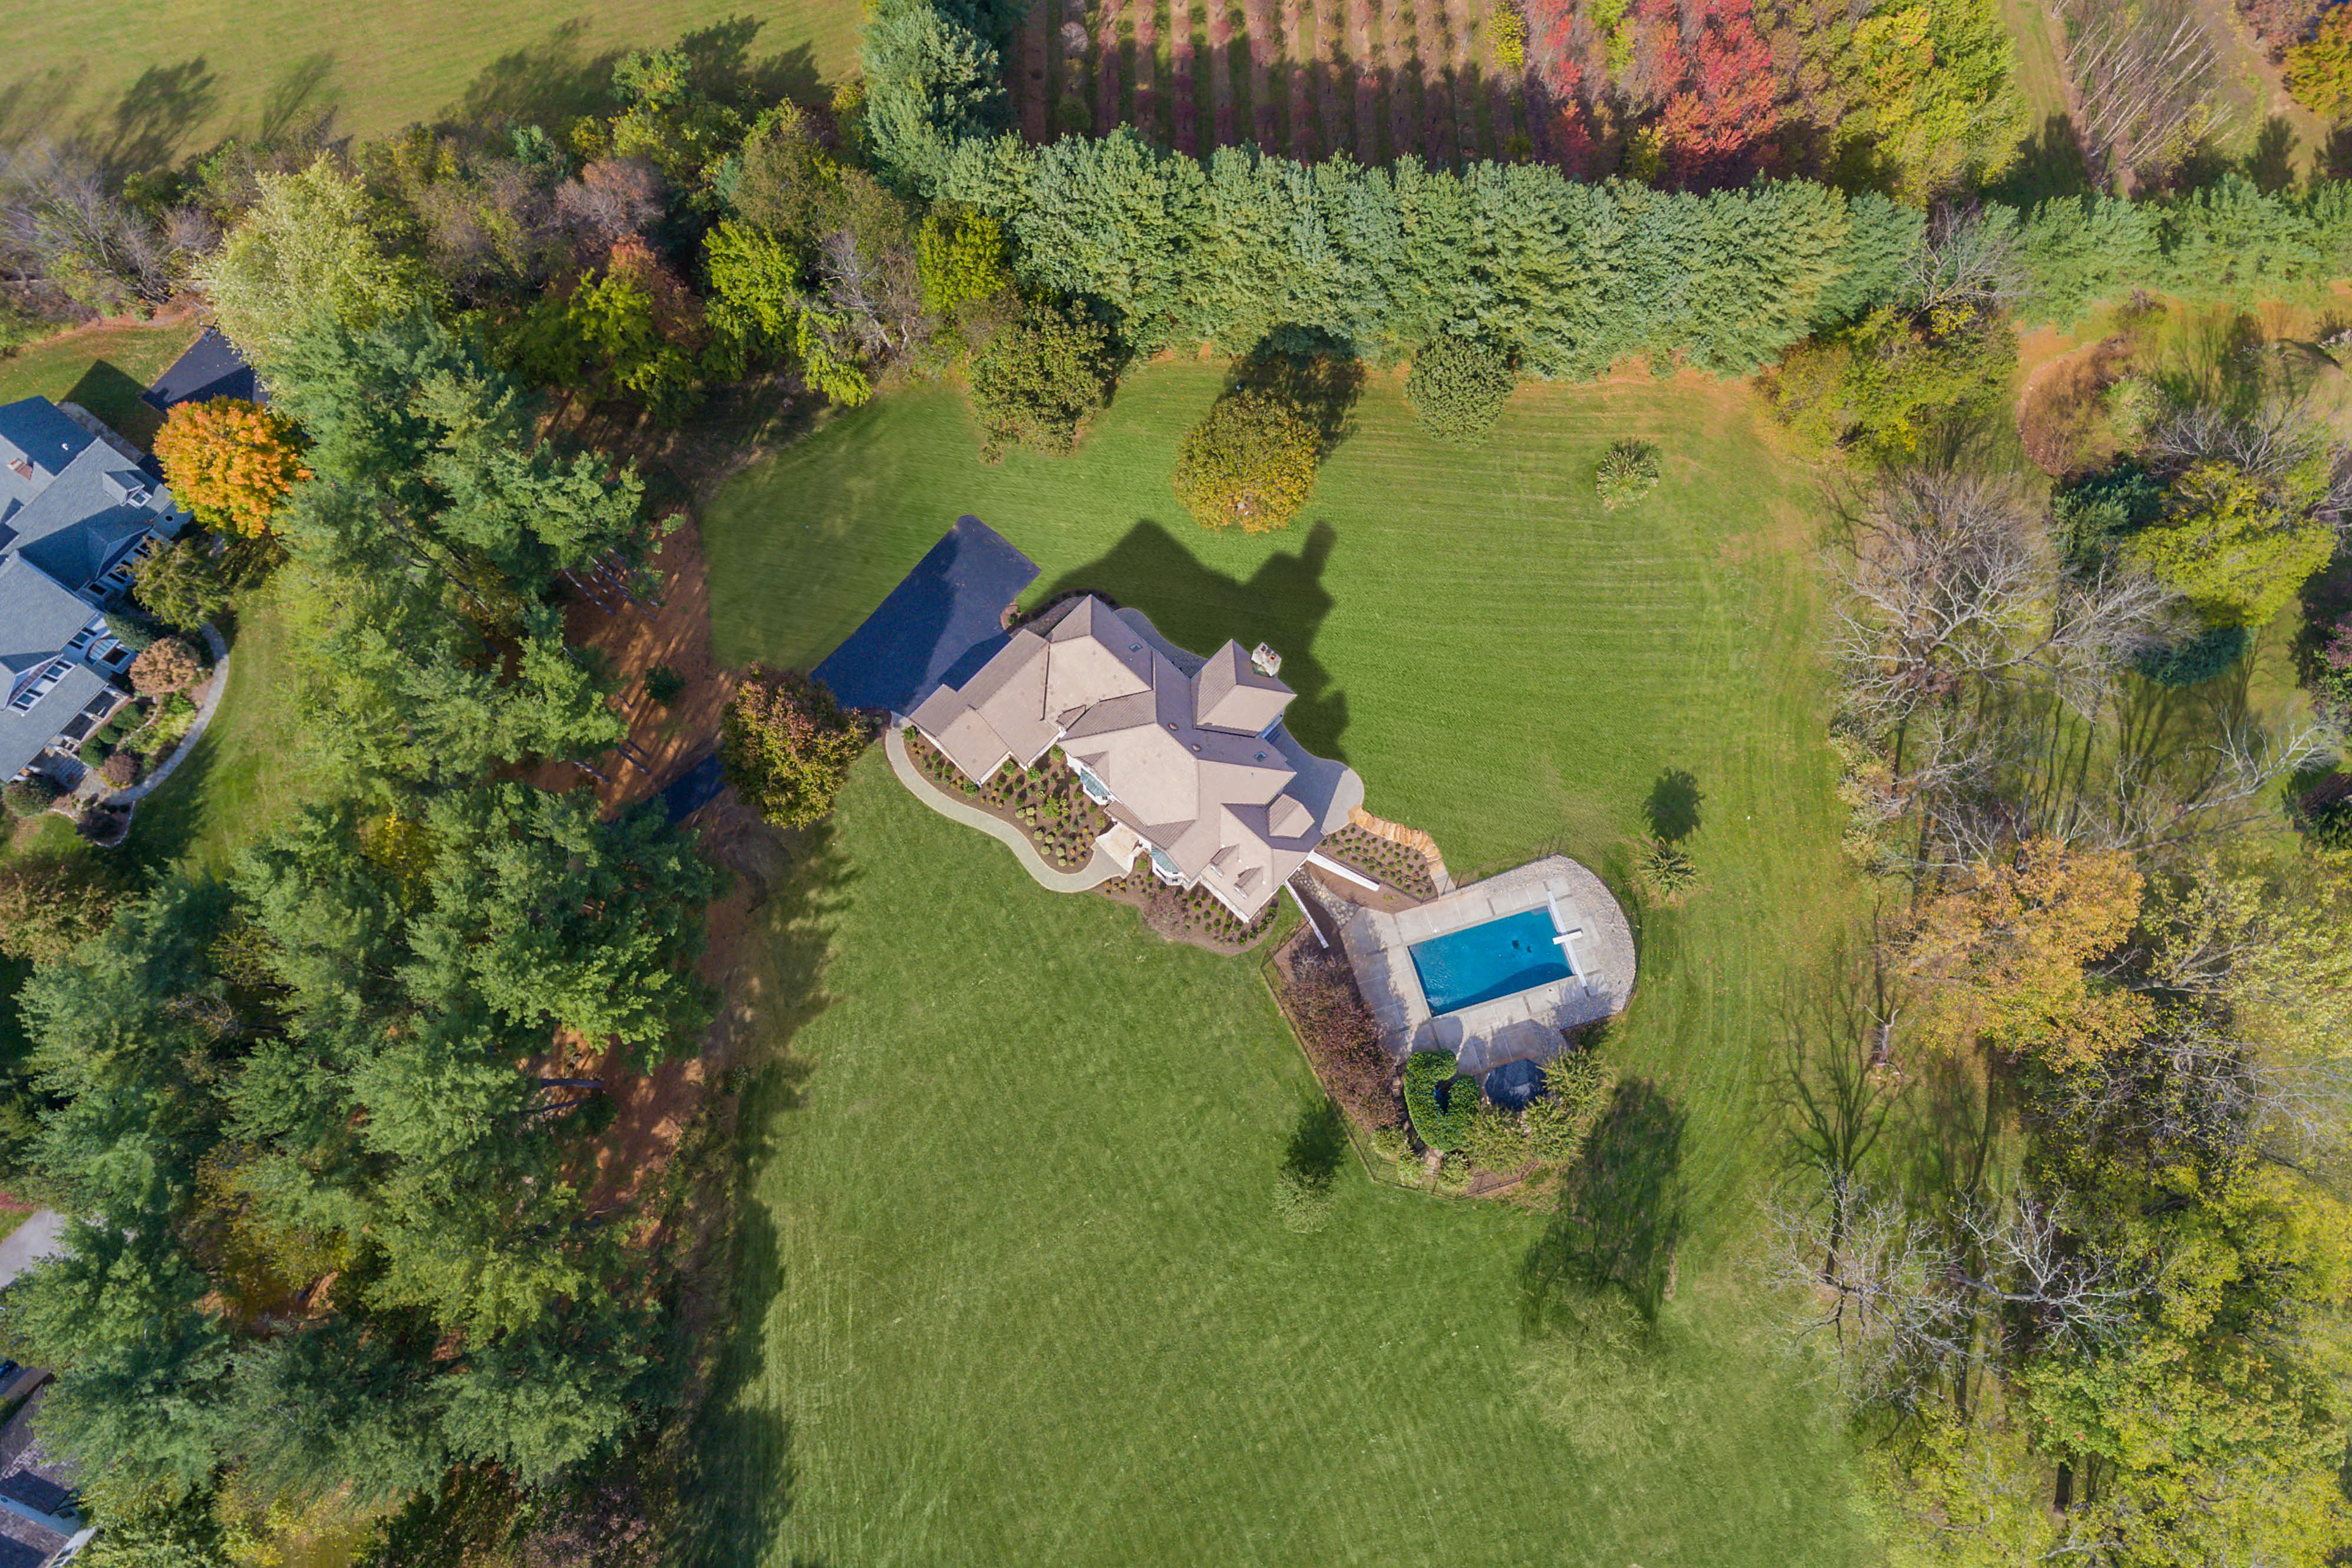 13 Drones For Real Estate August 2017 List m Aerial photography for real estate